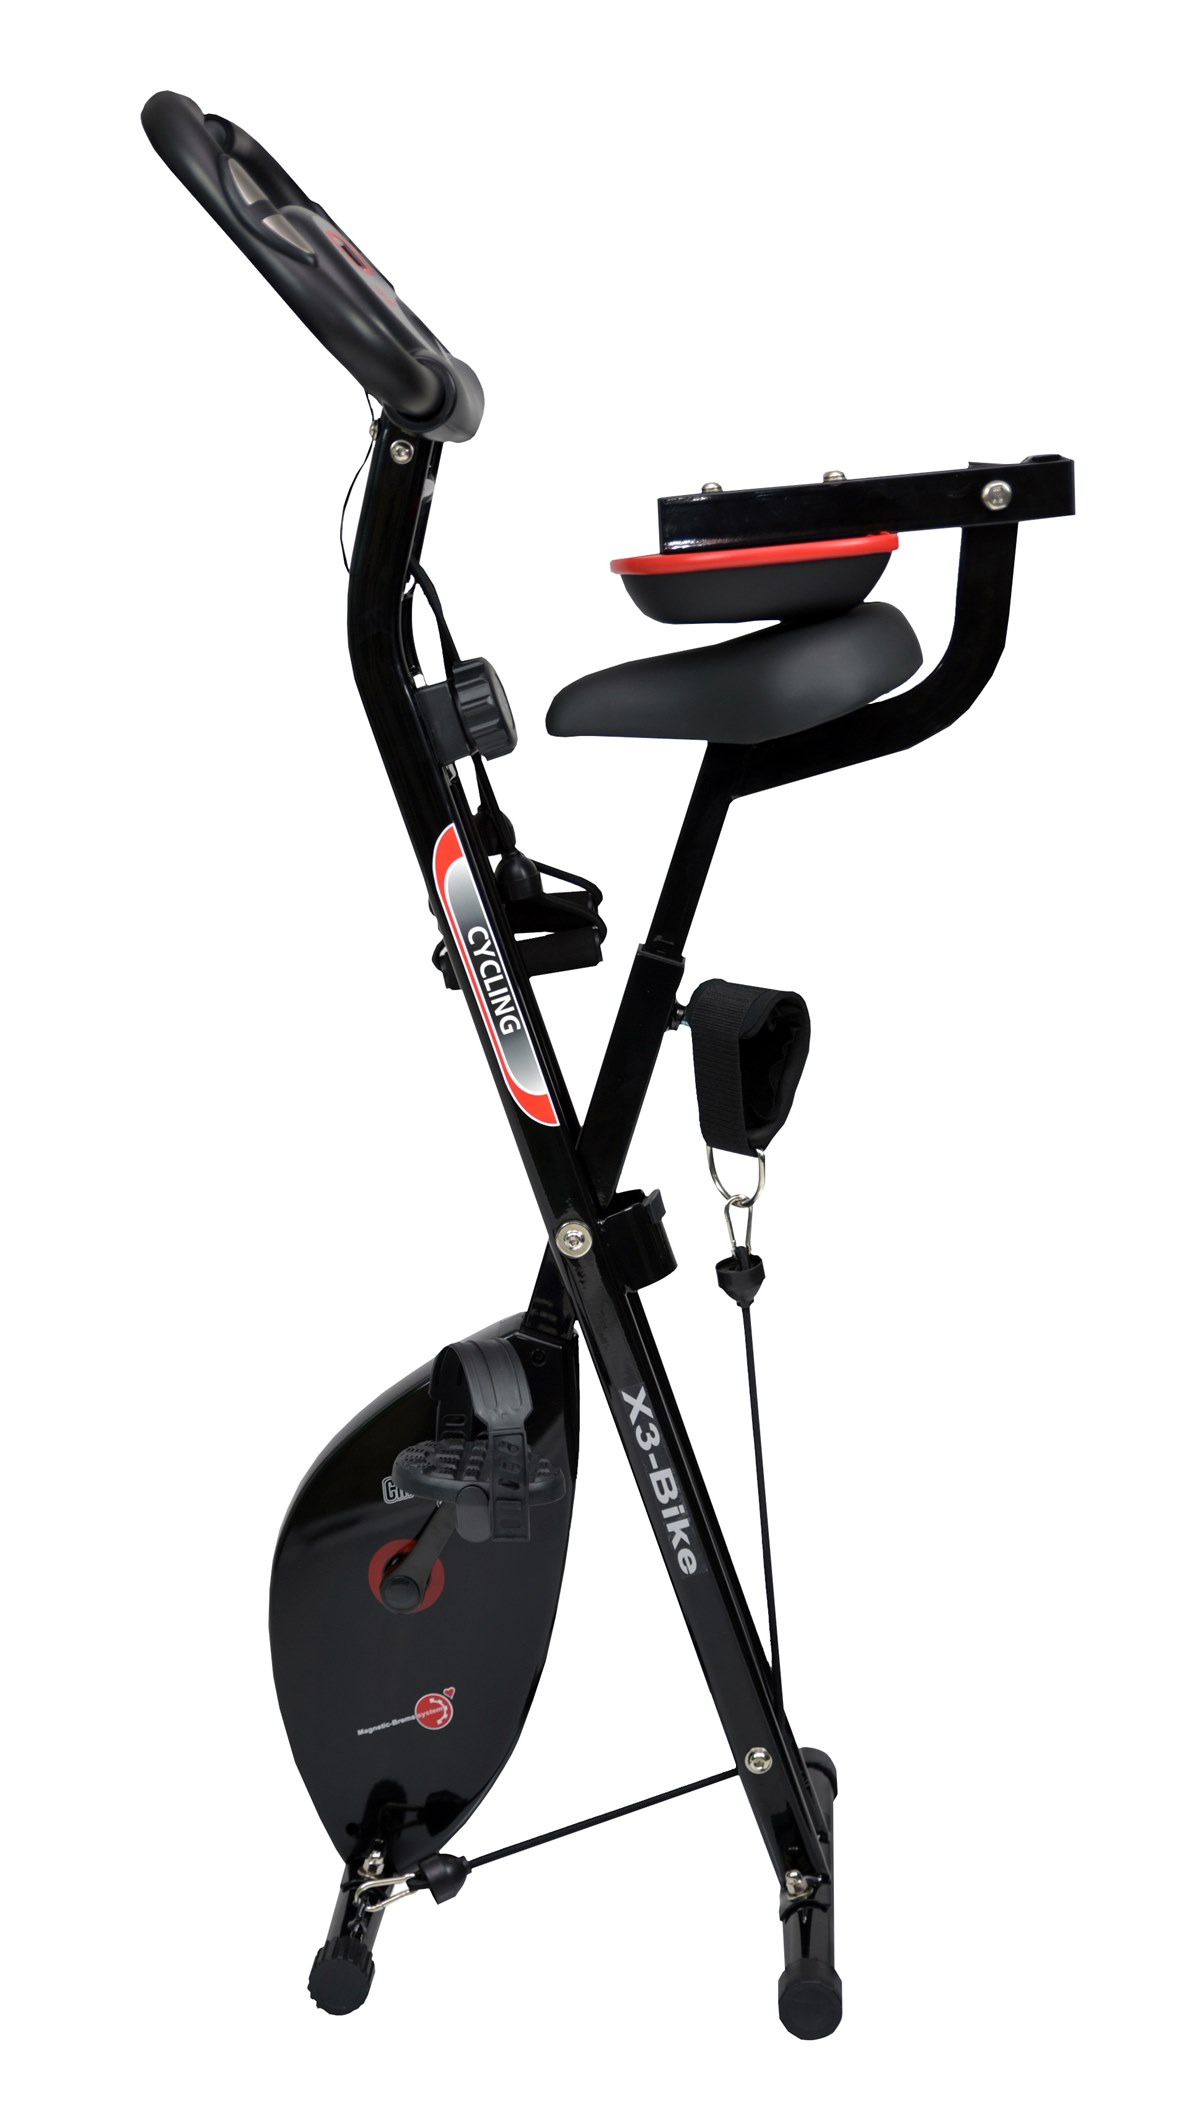 Klappheimtrainer X3 Bike